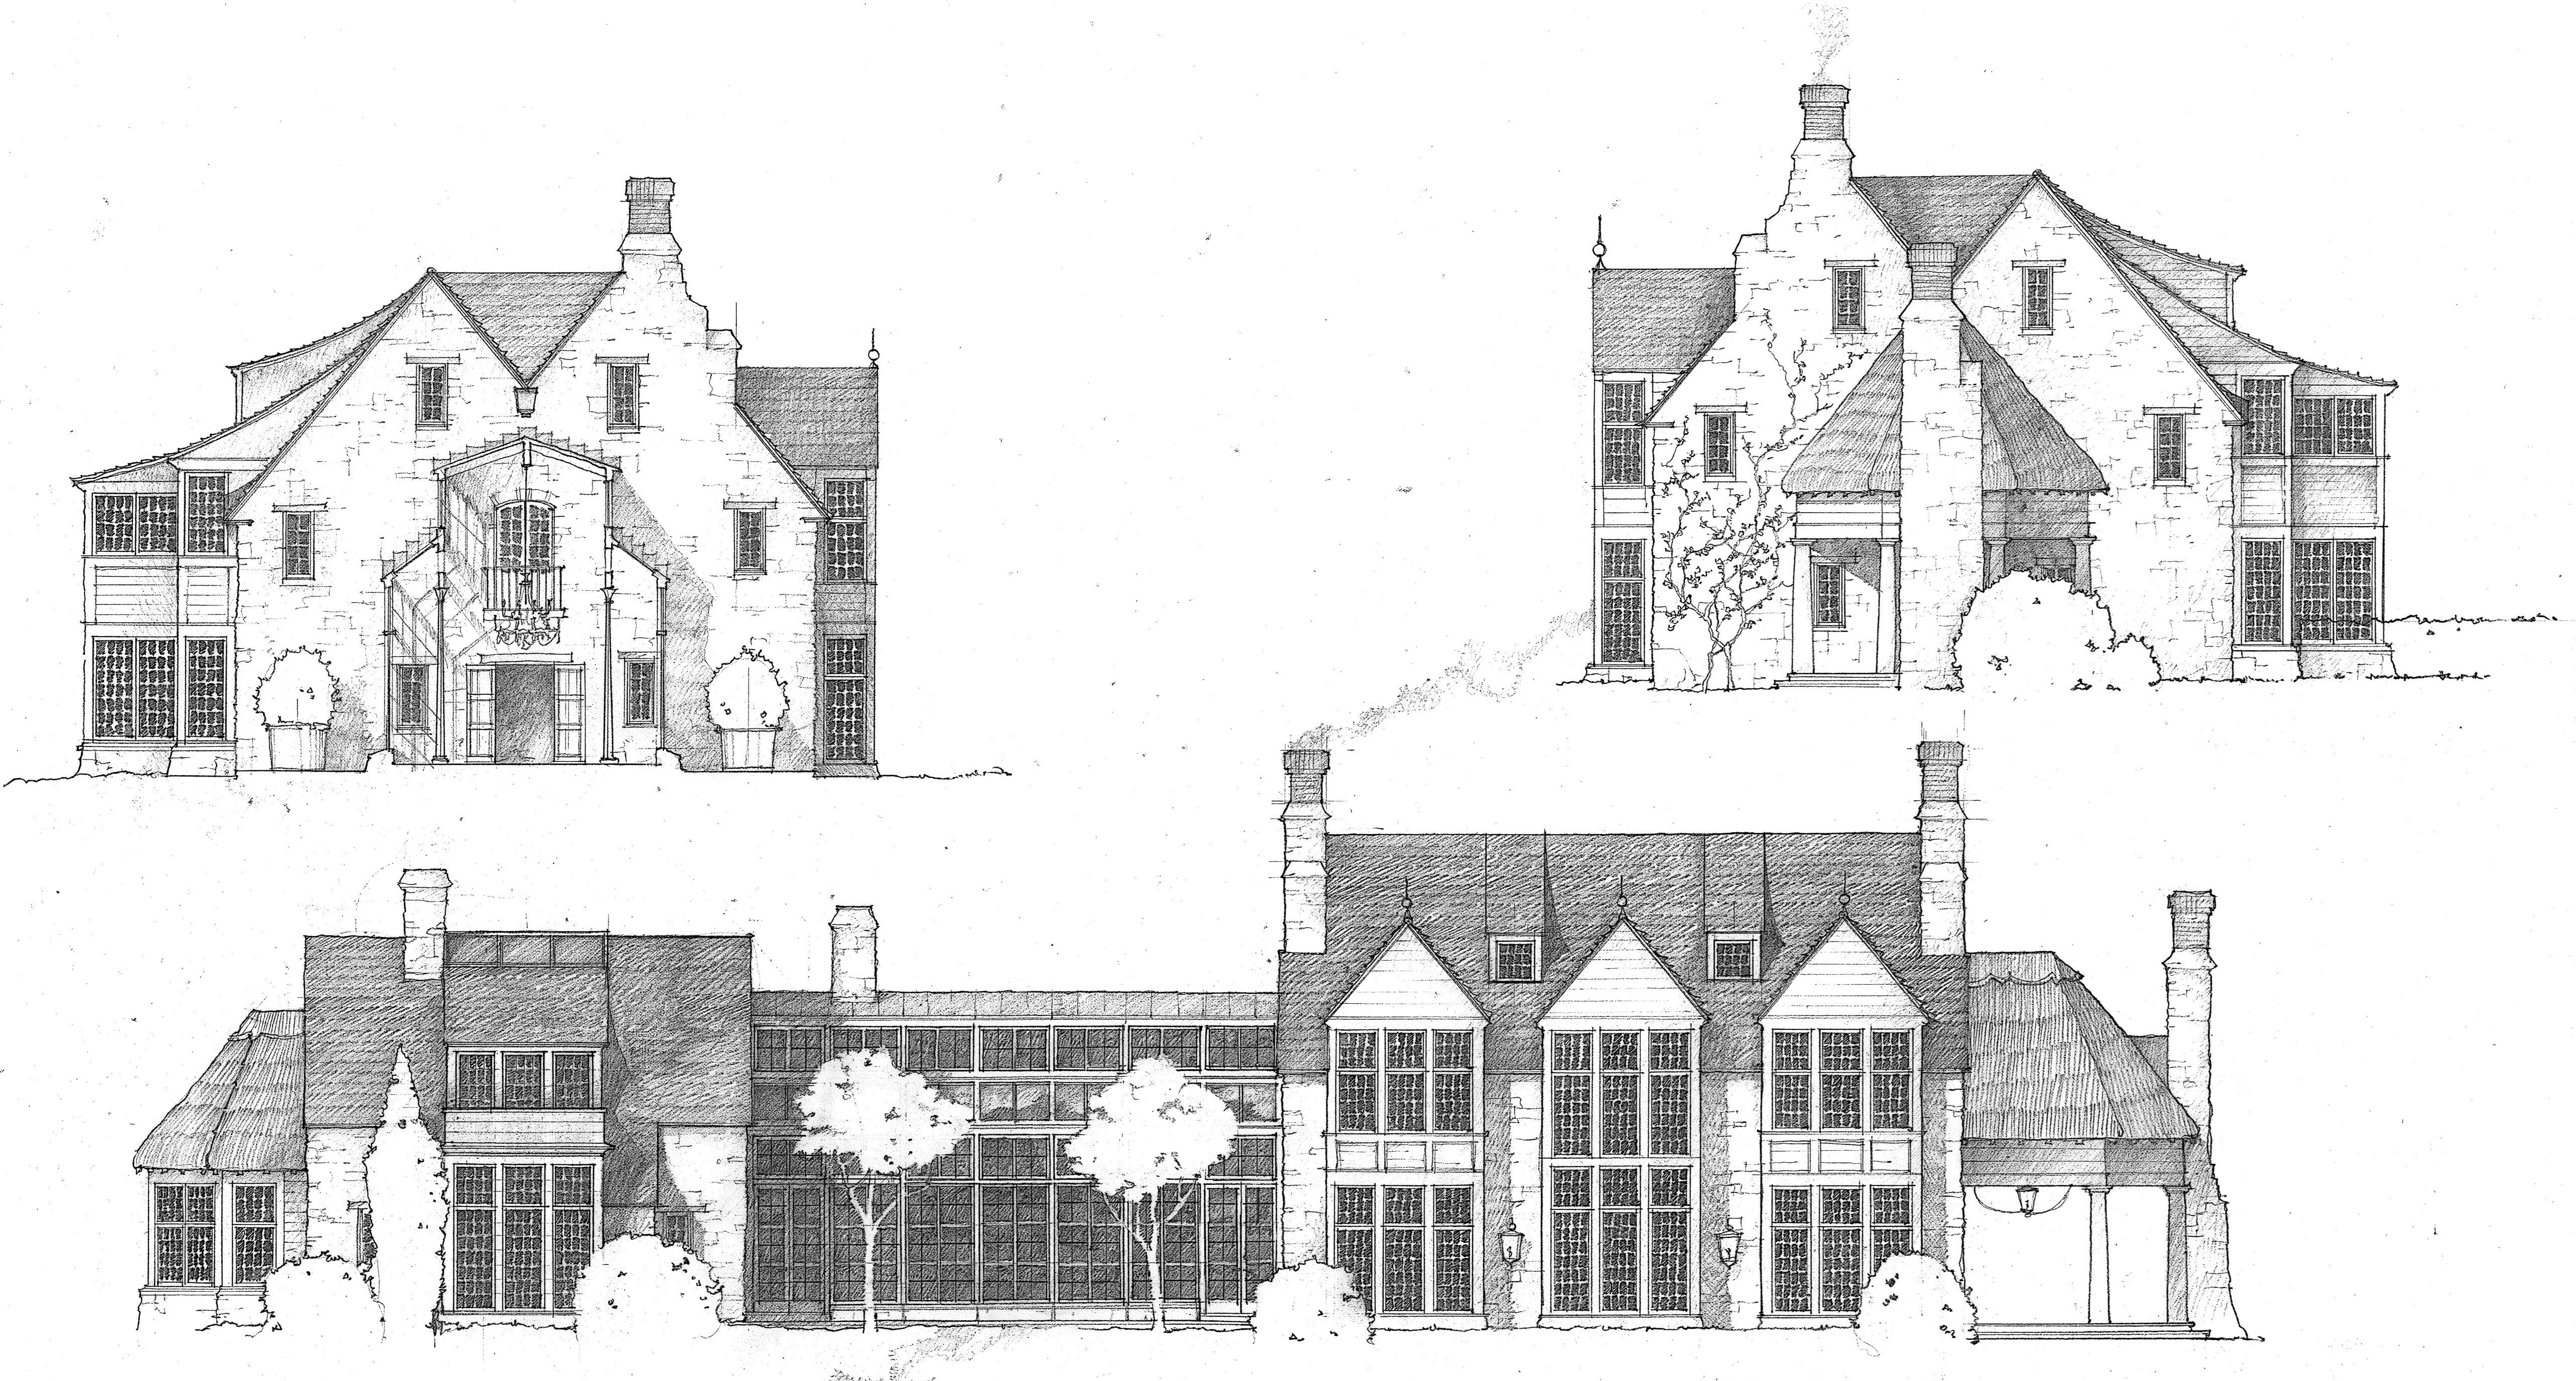 Domestic Architecture in addition 495818240198569847 furthermore 237283474090459186 in addition 495818240198569847 also Drawings. on bobby mcalpine house exteriors